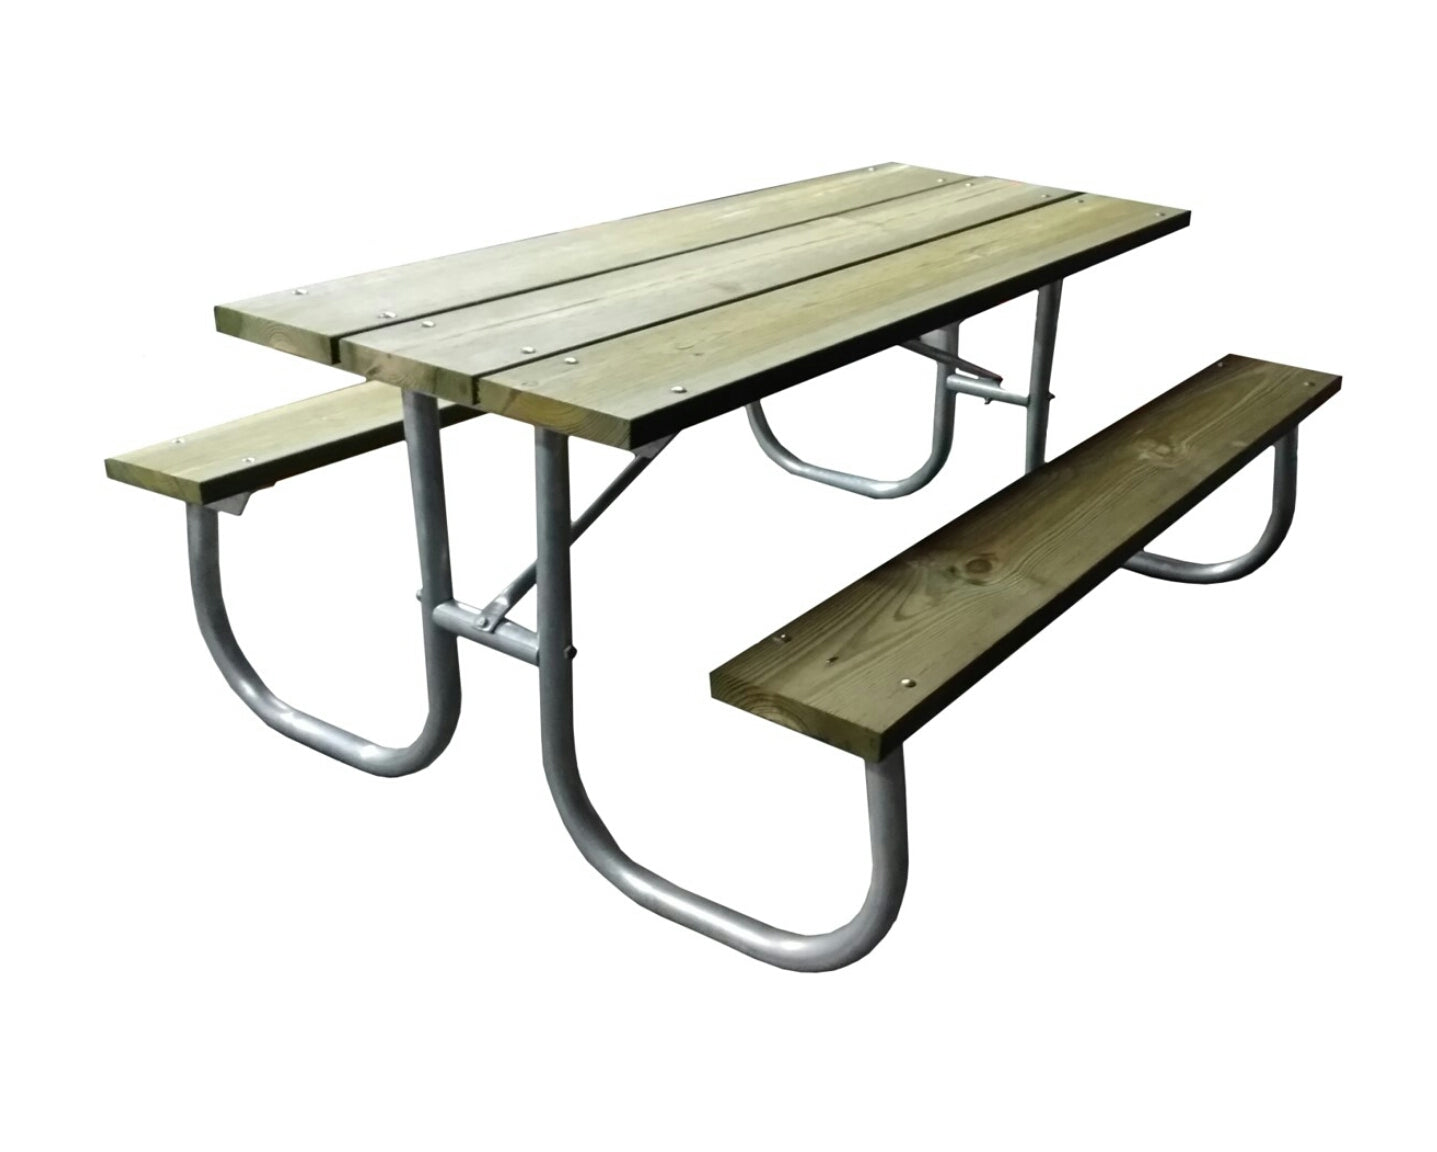 Picnic Table Commercial Style With Aluminum Frame Rosendale Picnic - Commercial picnic table frames